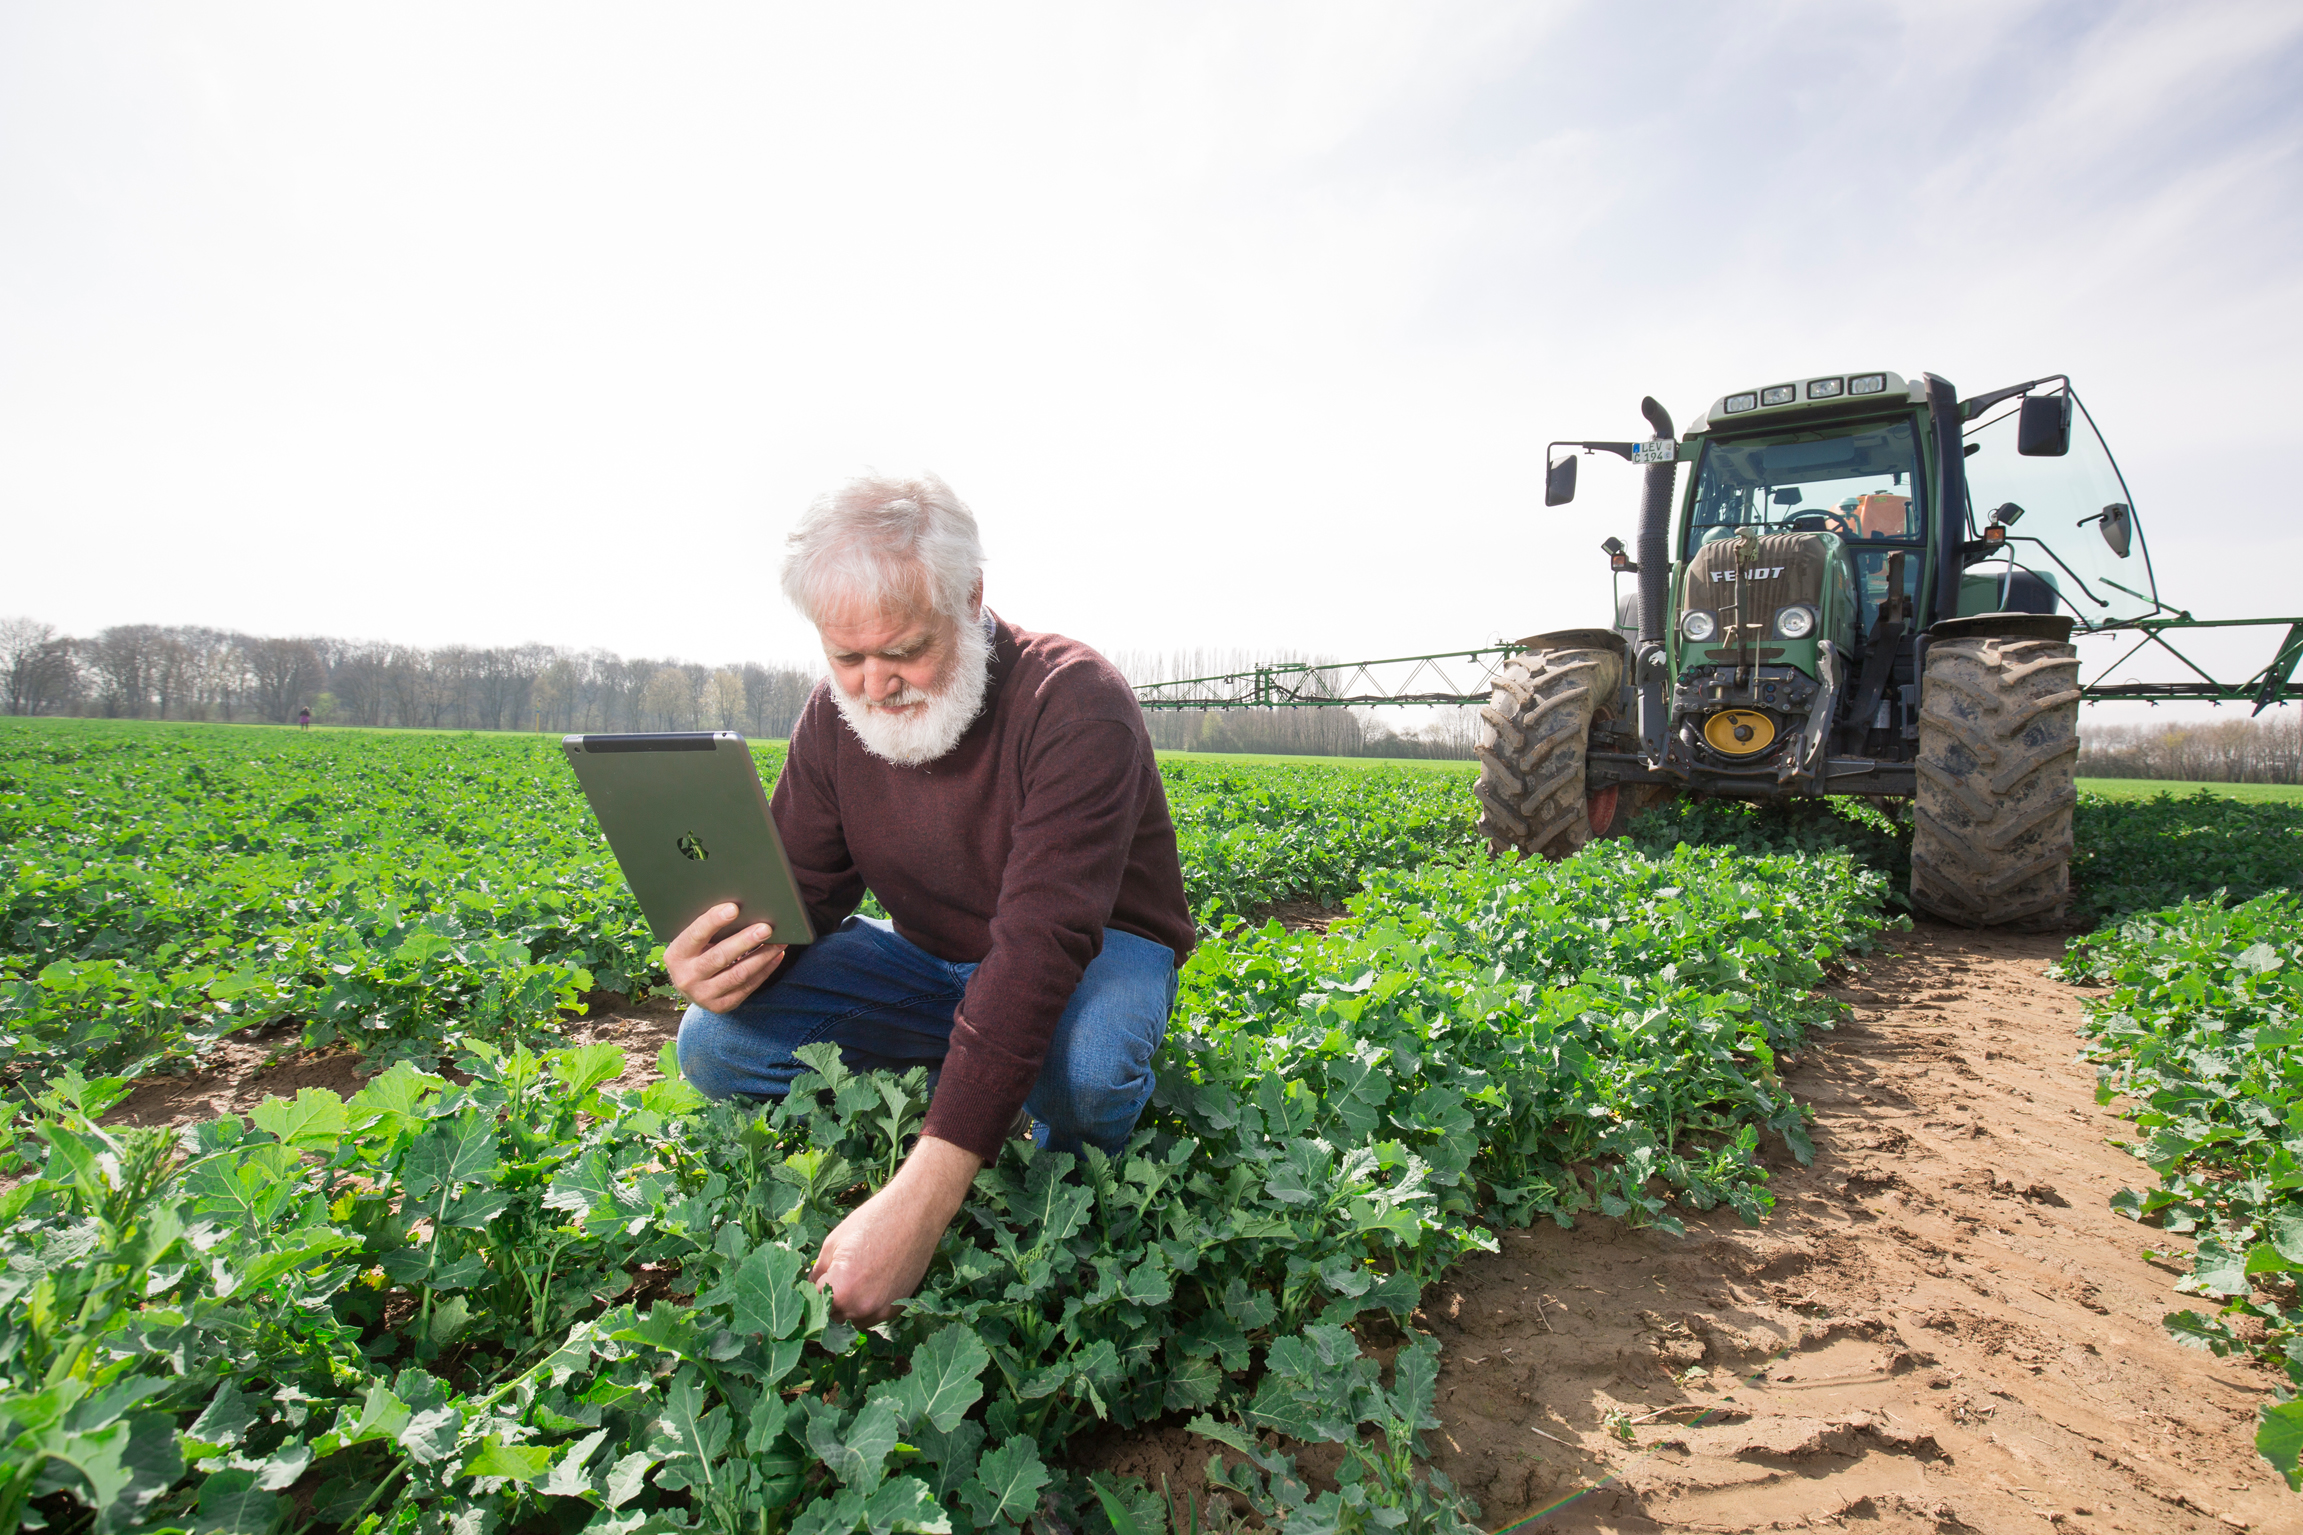 Bayer and Hamburg University working together to develop new digital solutions for sustainable agriculture.